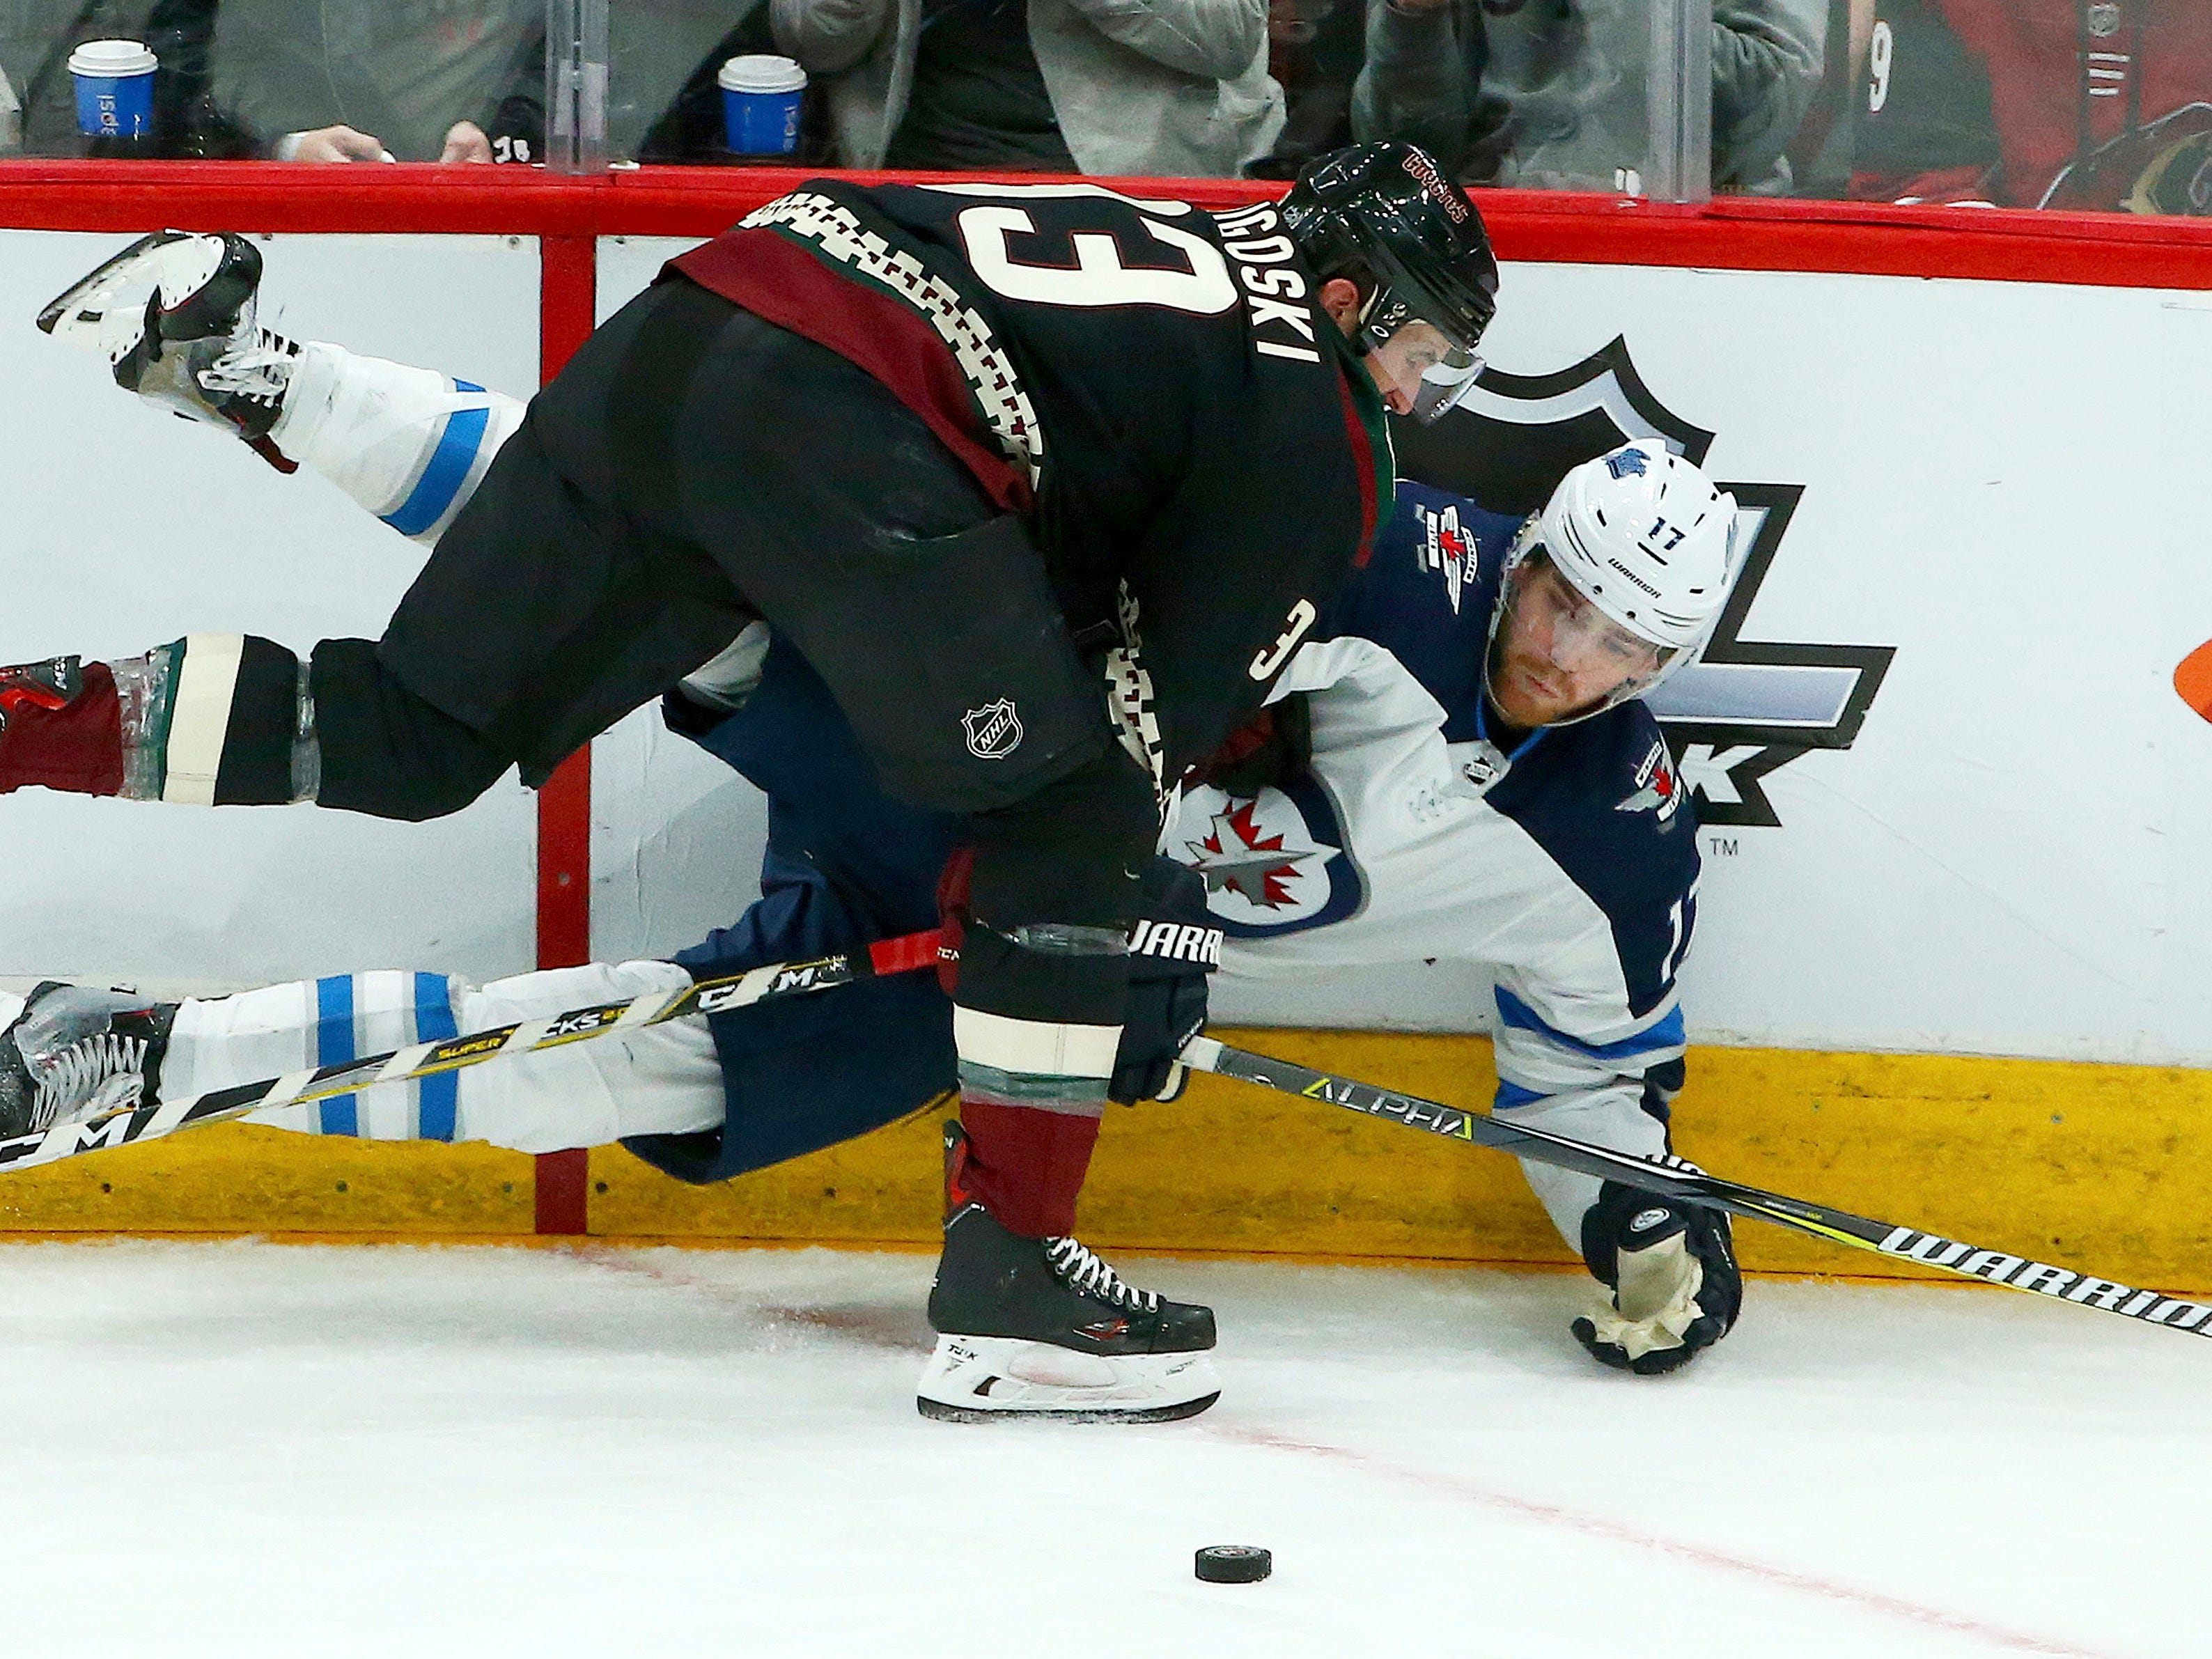 Arizona Coyotes defenseman Alex Goligoski, front, sends Winnipeg Jets center Adam Lowry (17) to the ice during the second period of an NHL hockey game Sunday, Feb. 24, 2019, in Glendale, Ariz.